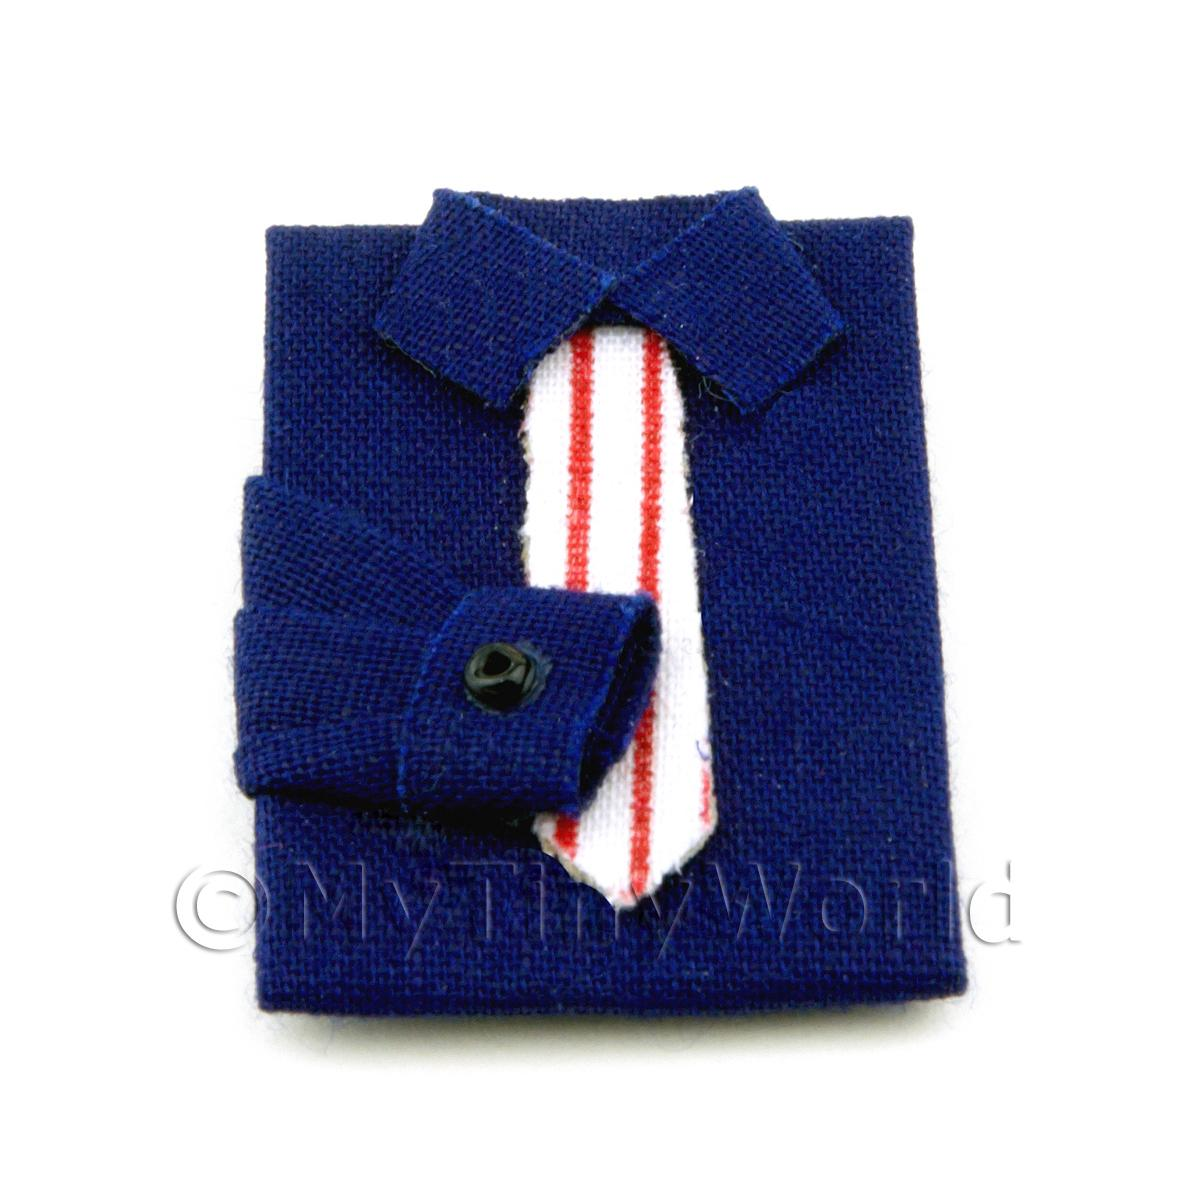 Dolls House Miniature Blue Shirt With Tie